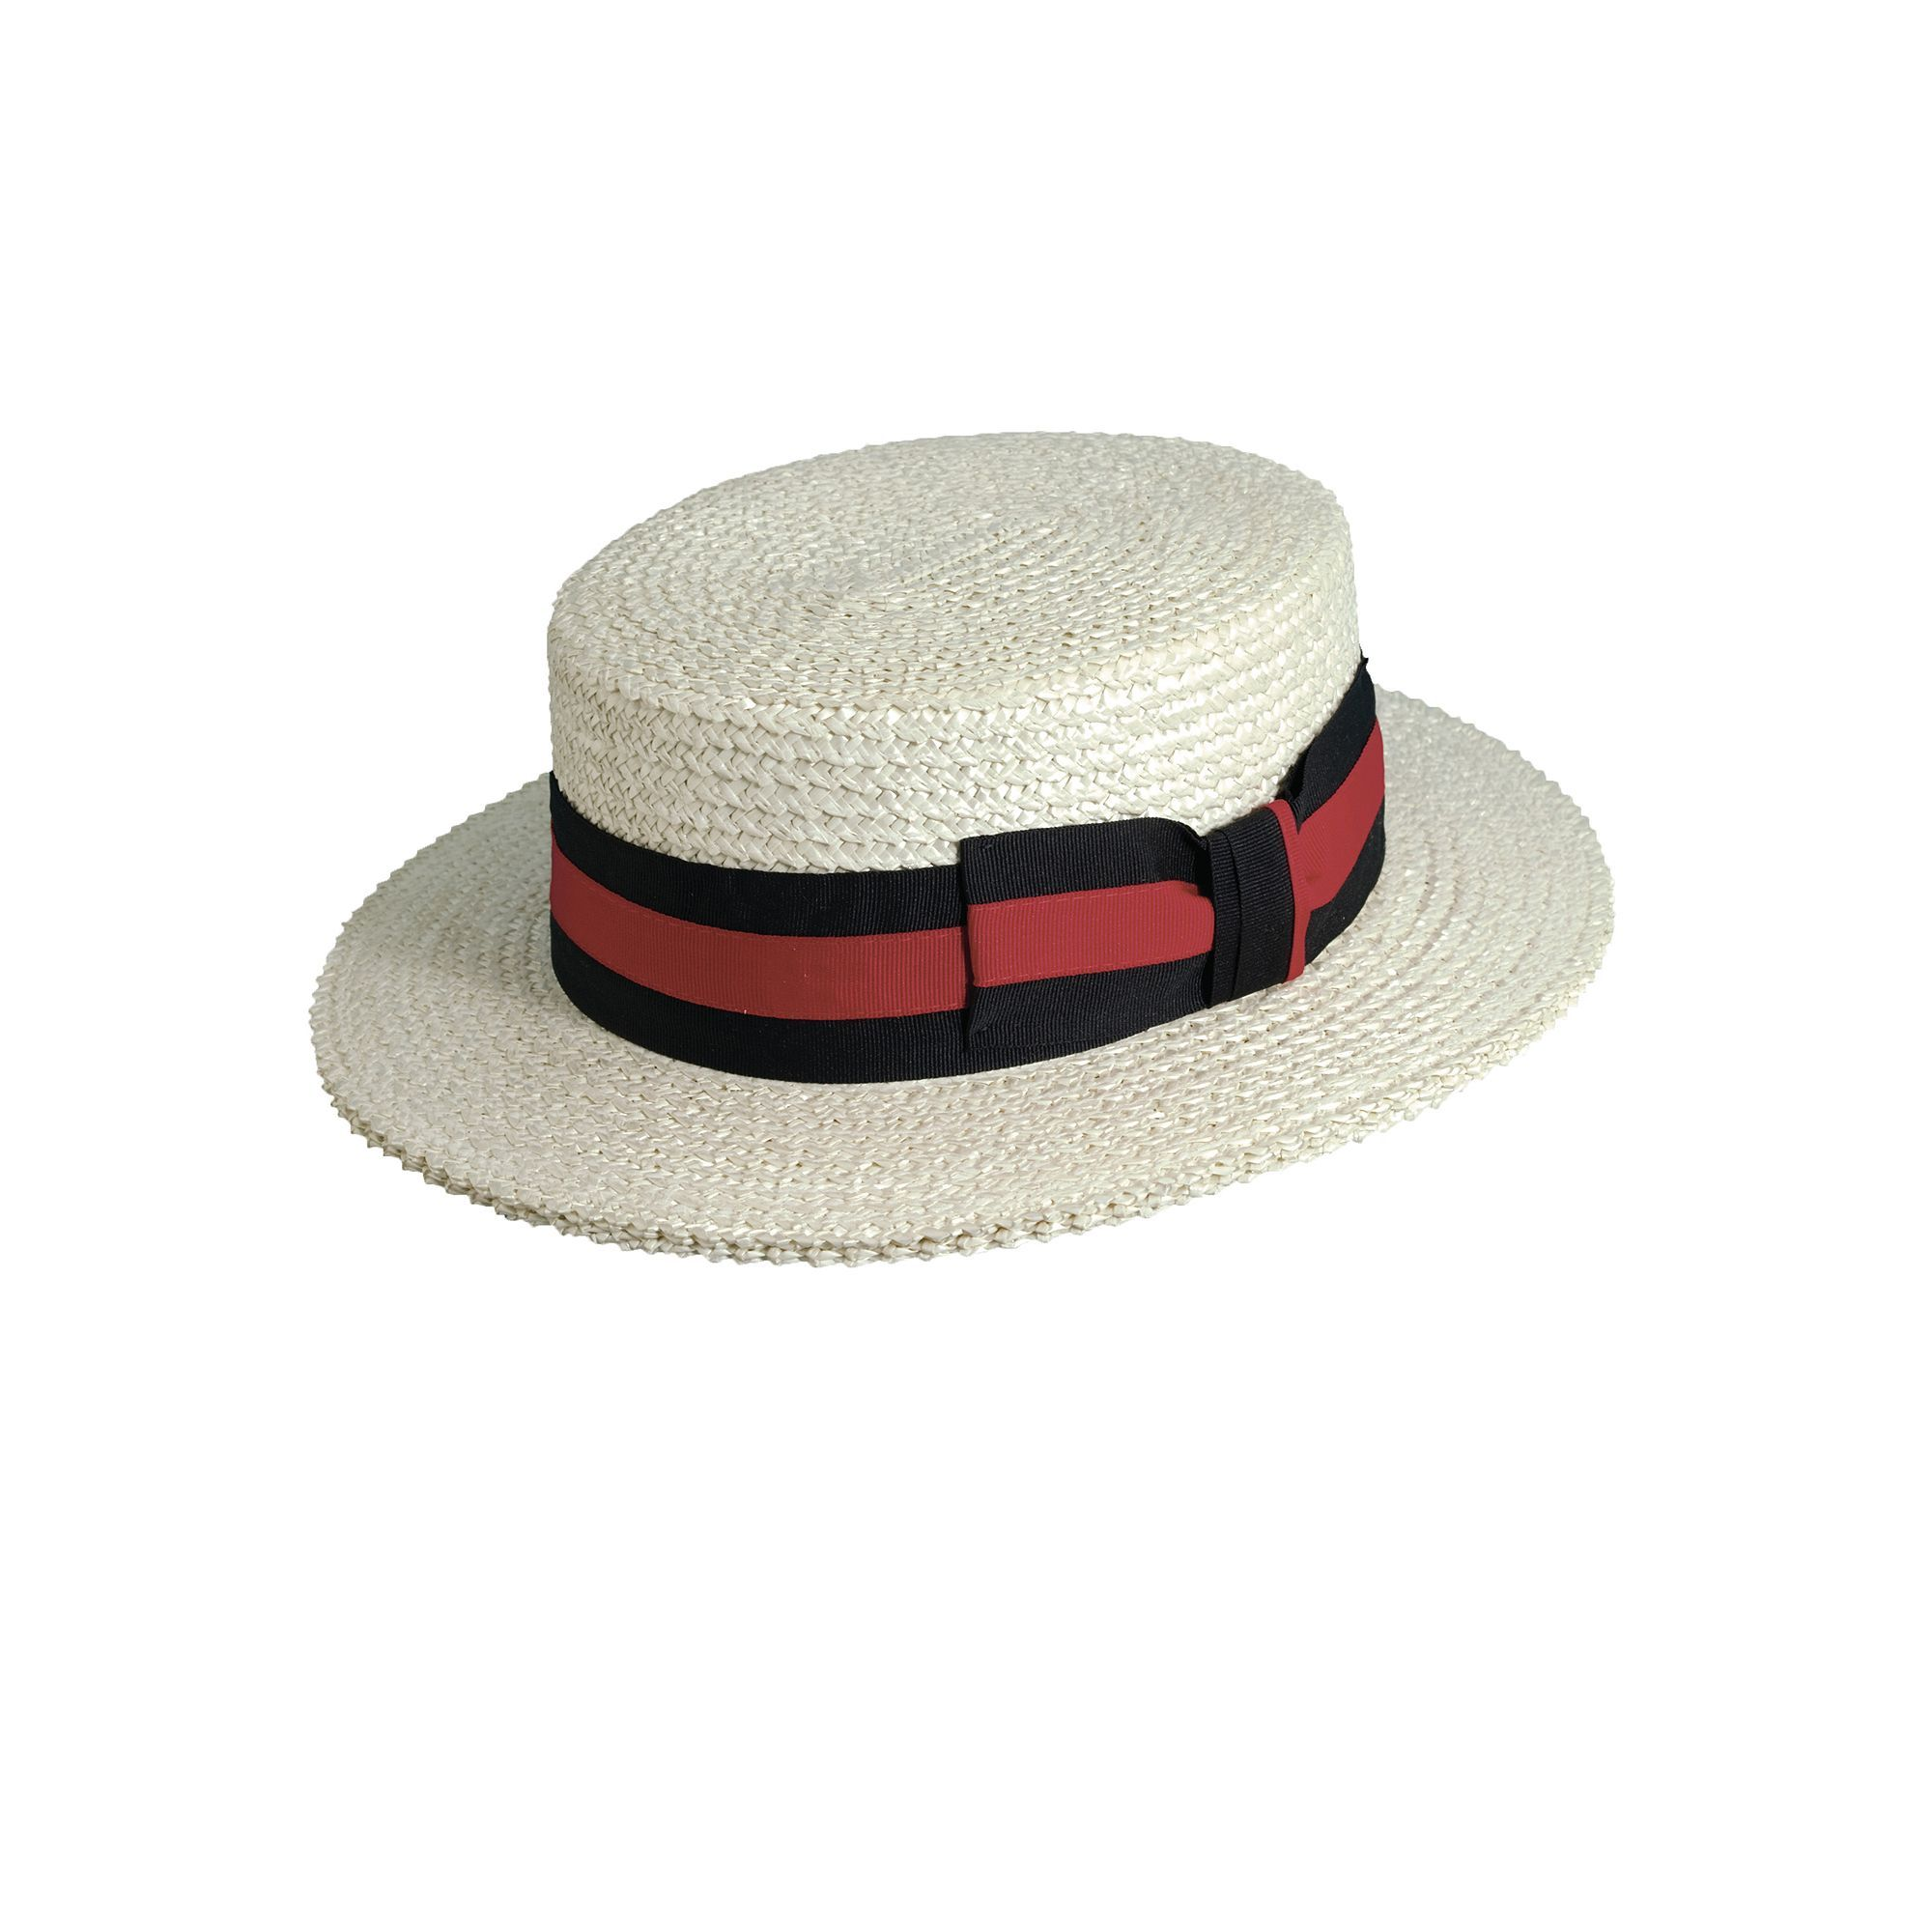 105303d4e3f Scala Classico Straw Boater Hat - Men in 2019 | Products | Boater ...